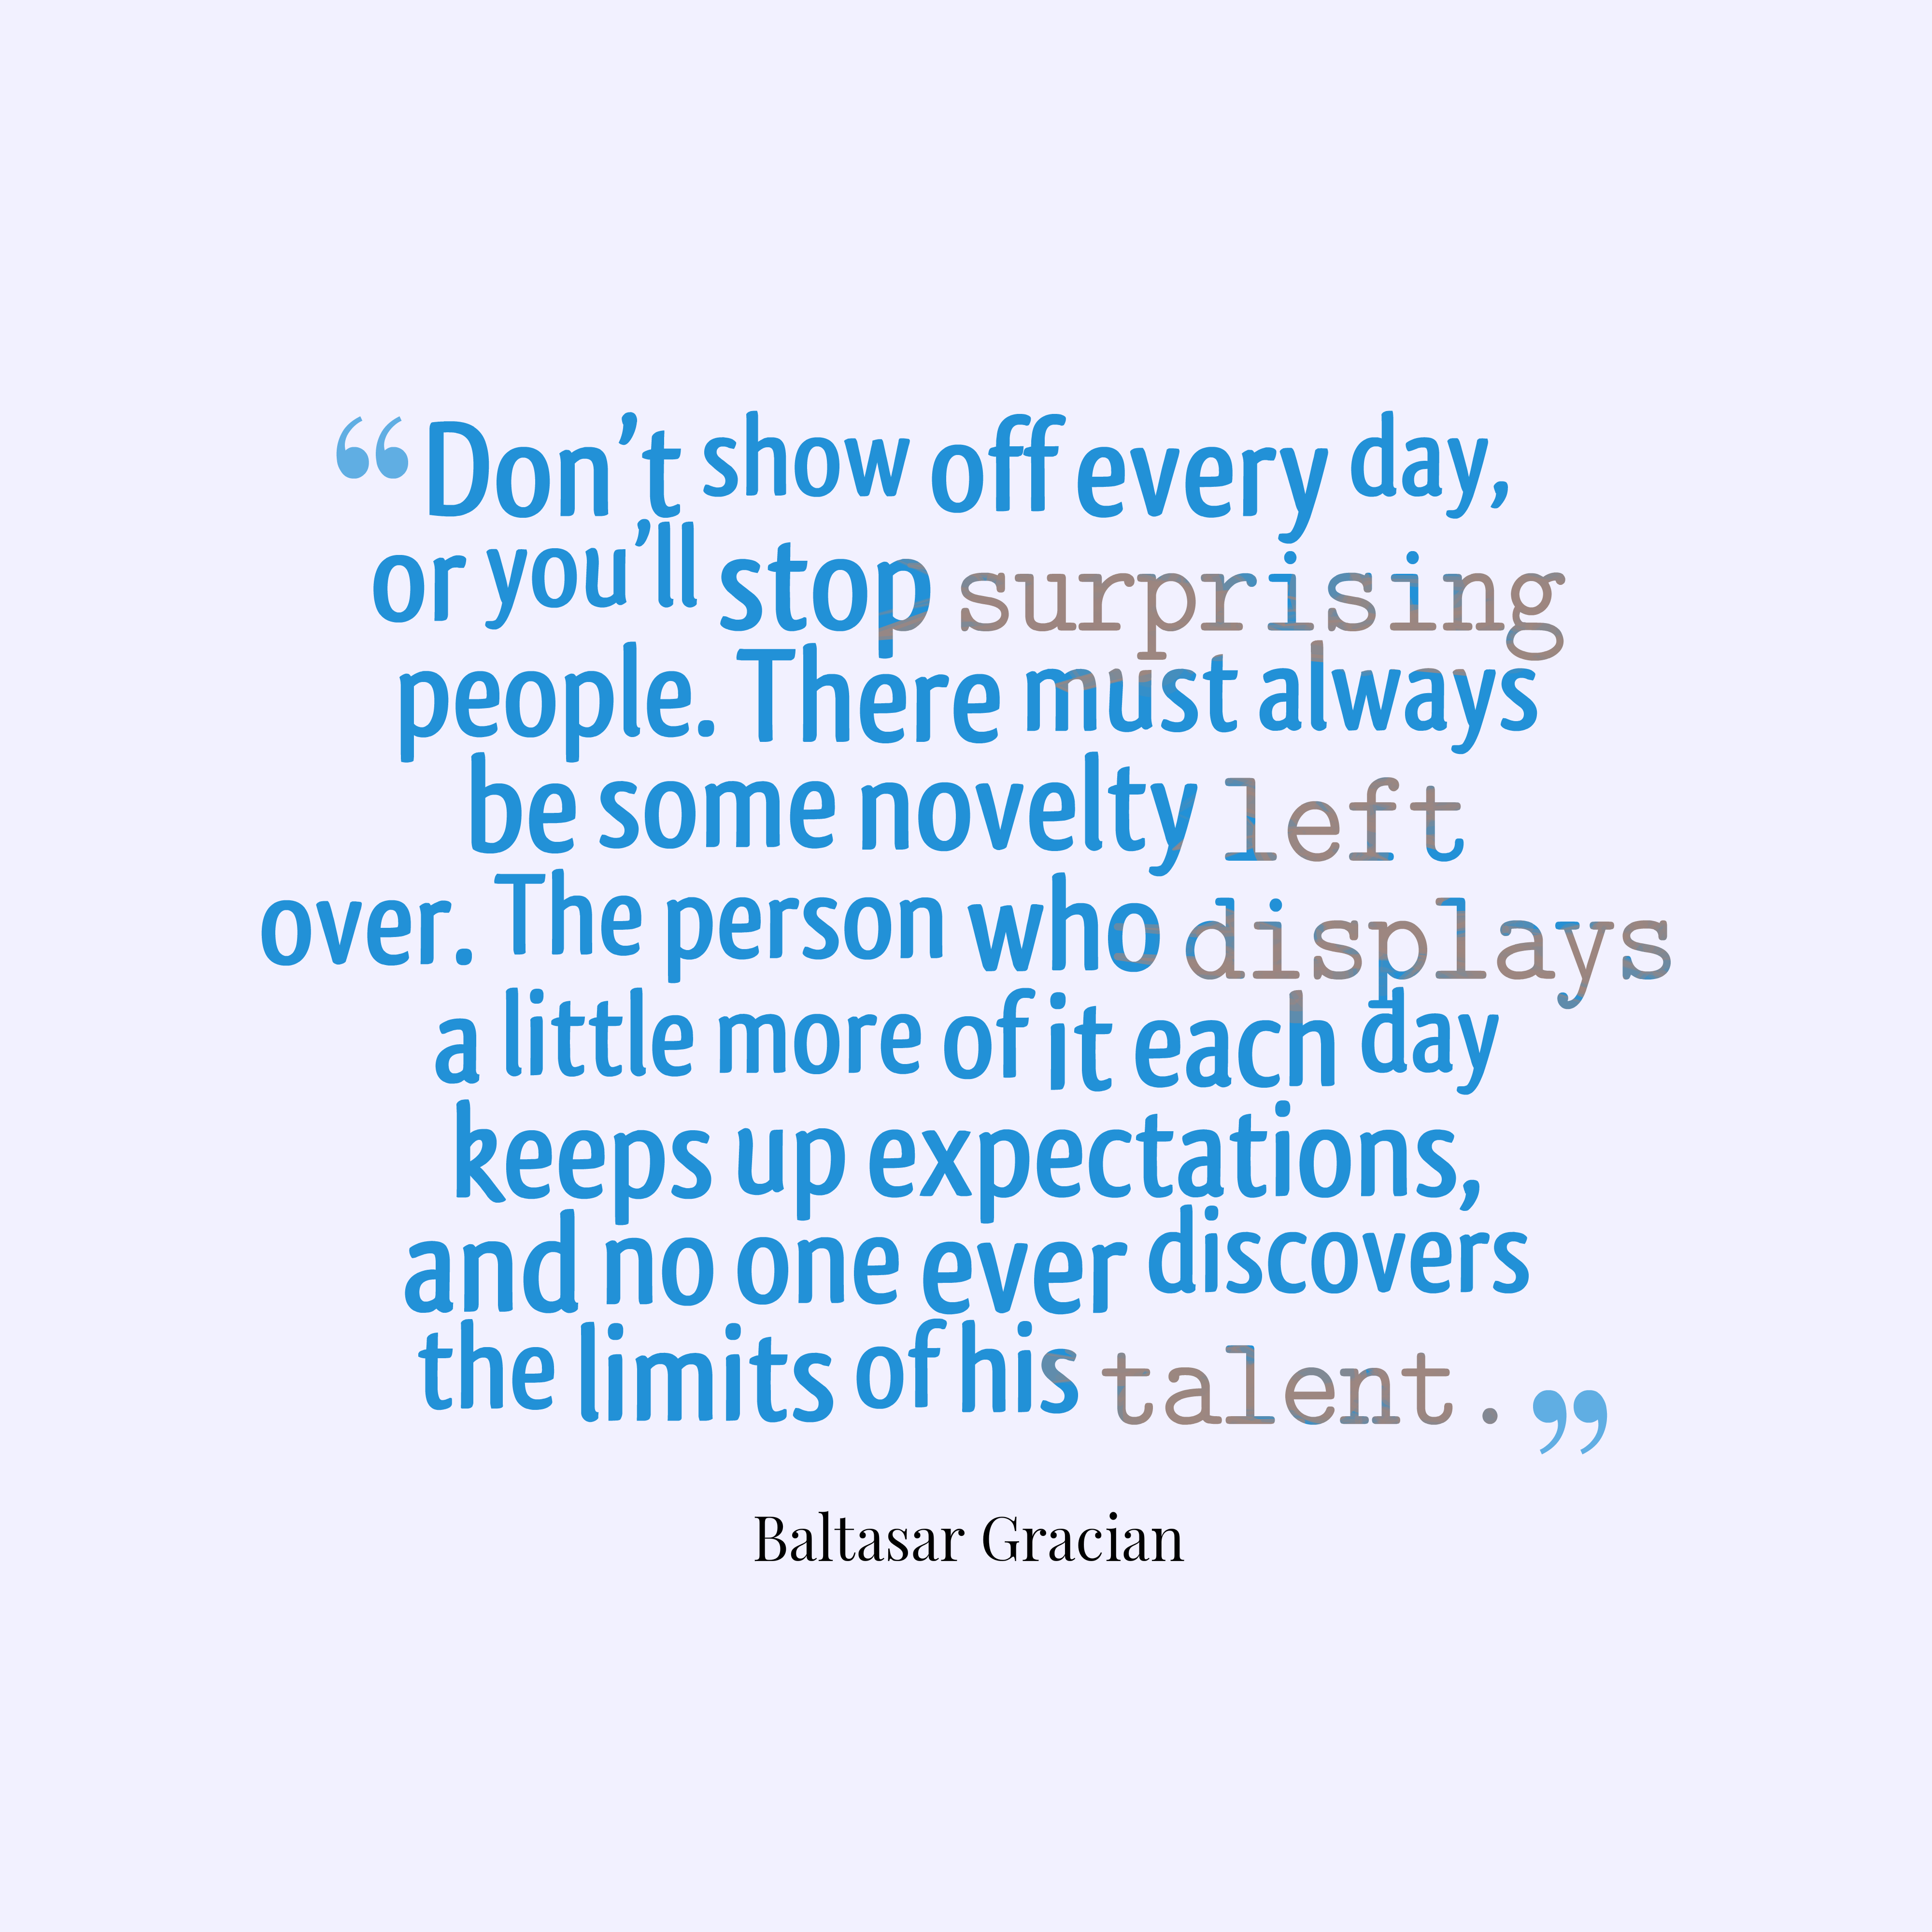 Quotes image of Don't show off every day, or you'll stop surprising people. There must always be some novelty left over. The person who displays a little more of it each day keeps up expectations, and no one ever discovers the limits of his talent.